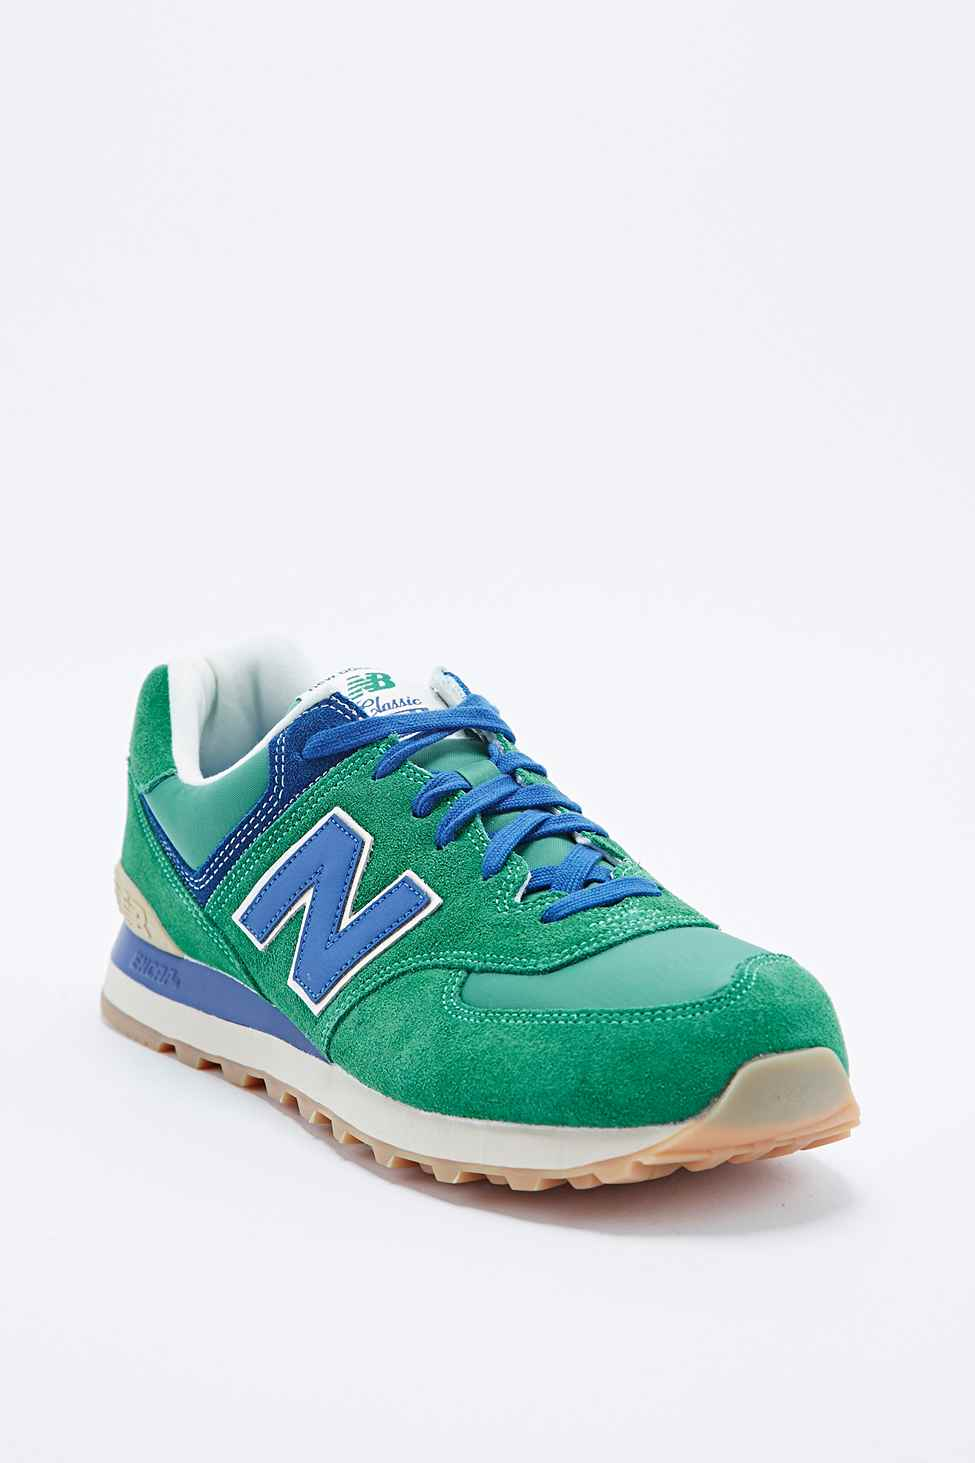 Classic Running And New Balance In Green 574 Trainers Blue roxeCBWd